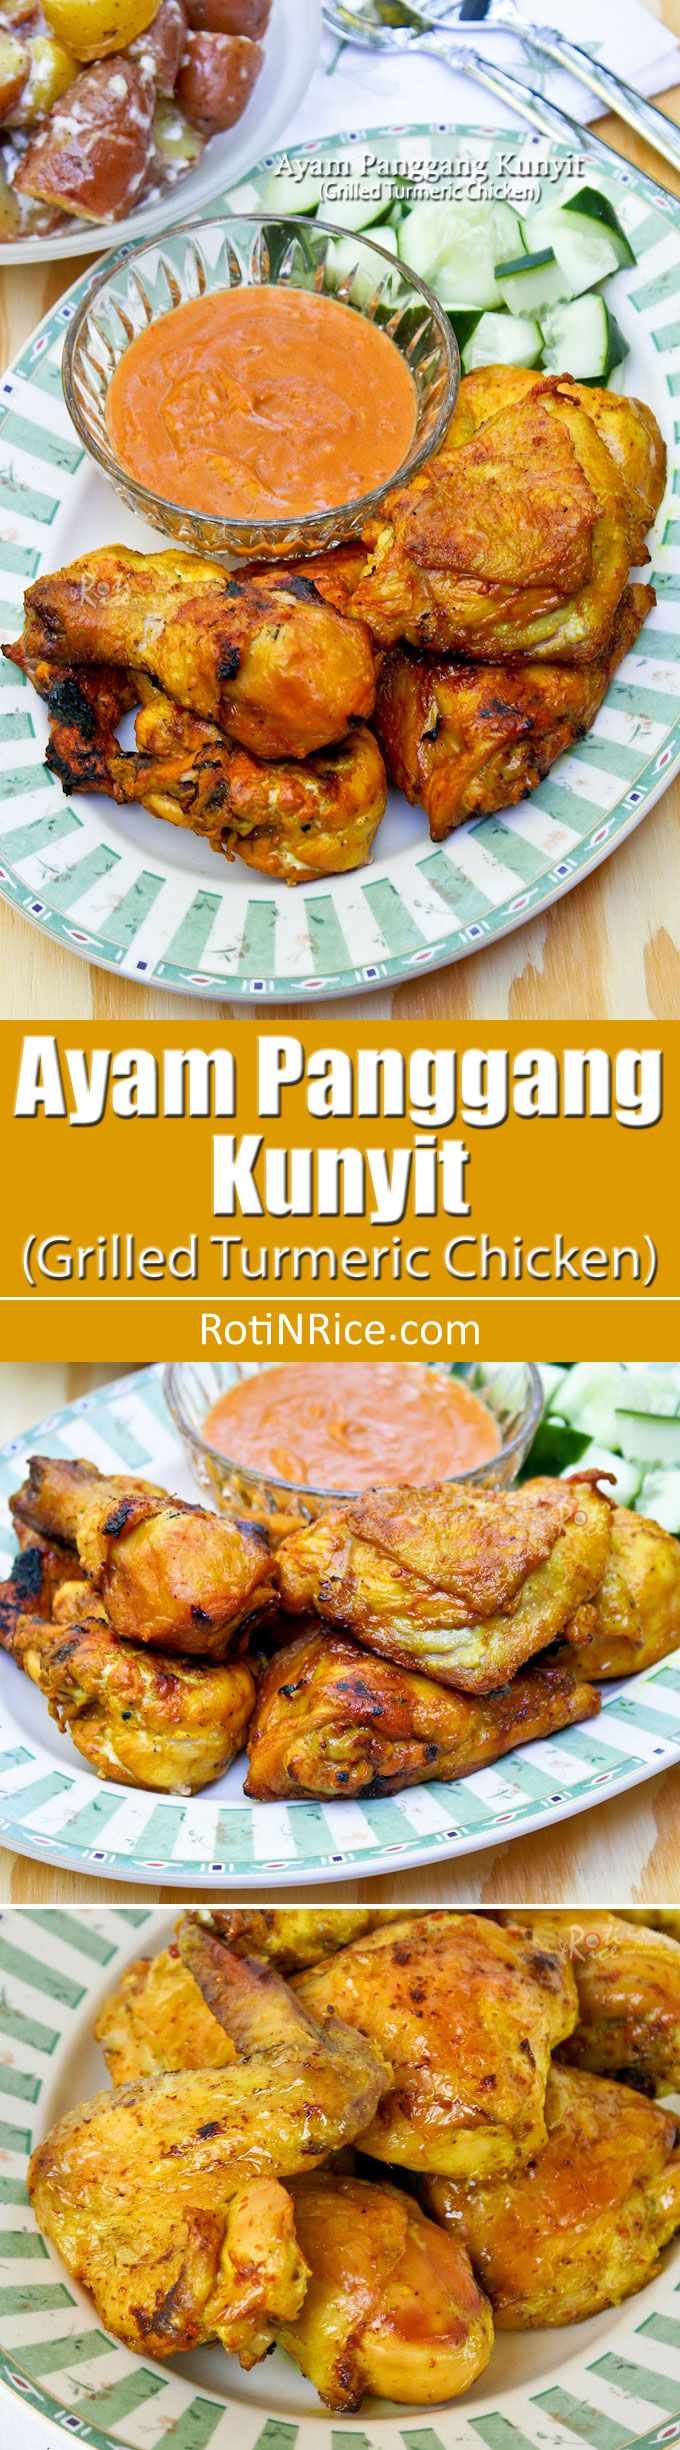 Simple yet tasty and aromatic Ayam Panggang Kunyit (Grilled Turmeric Chicken) using ground or fresh turmeric. Only 5 ingredients required. | RotiNRice.com